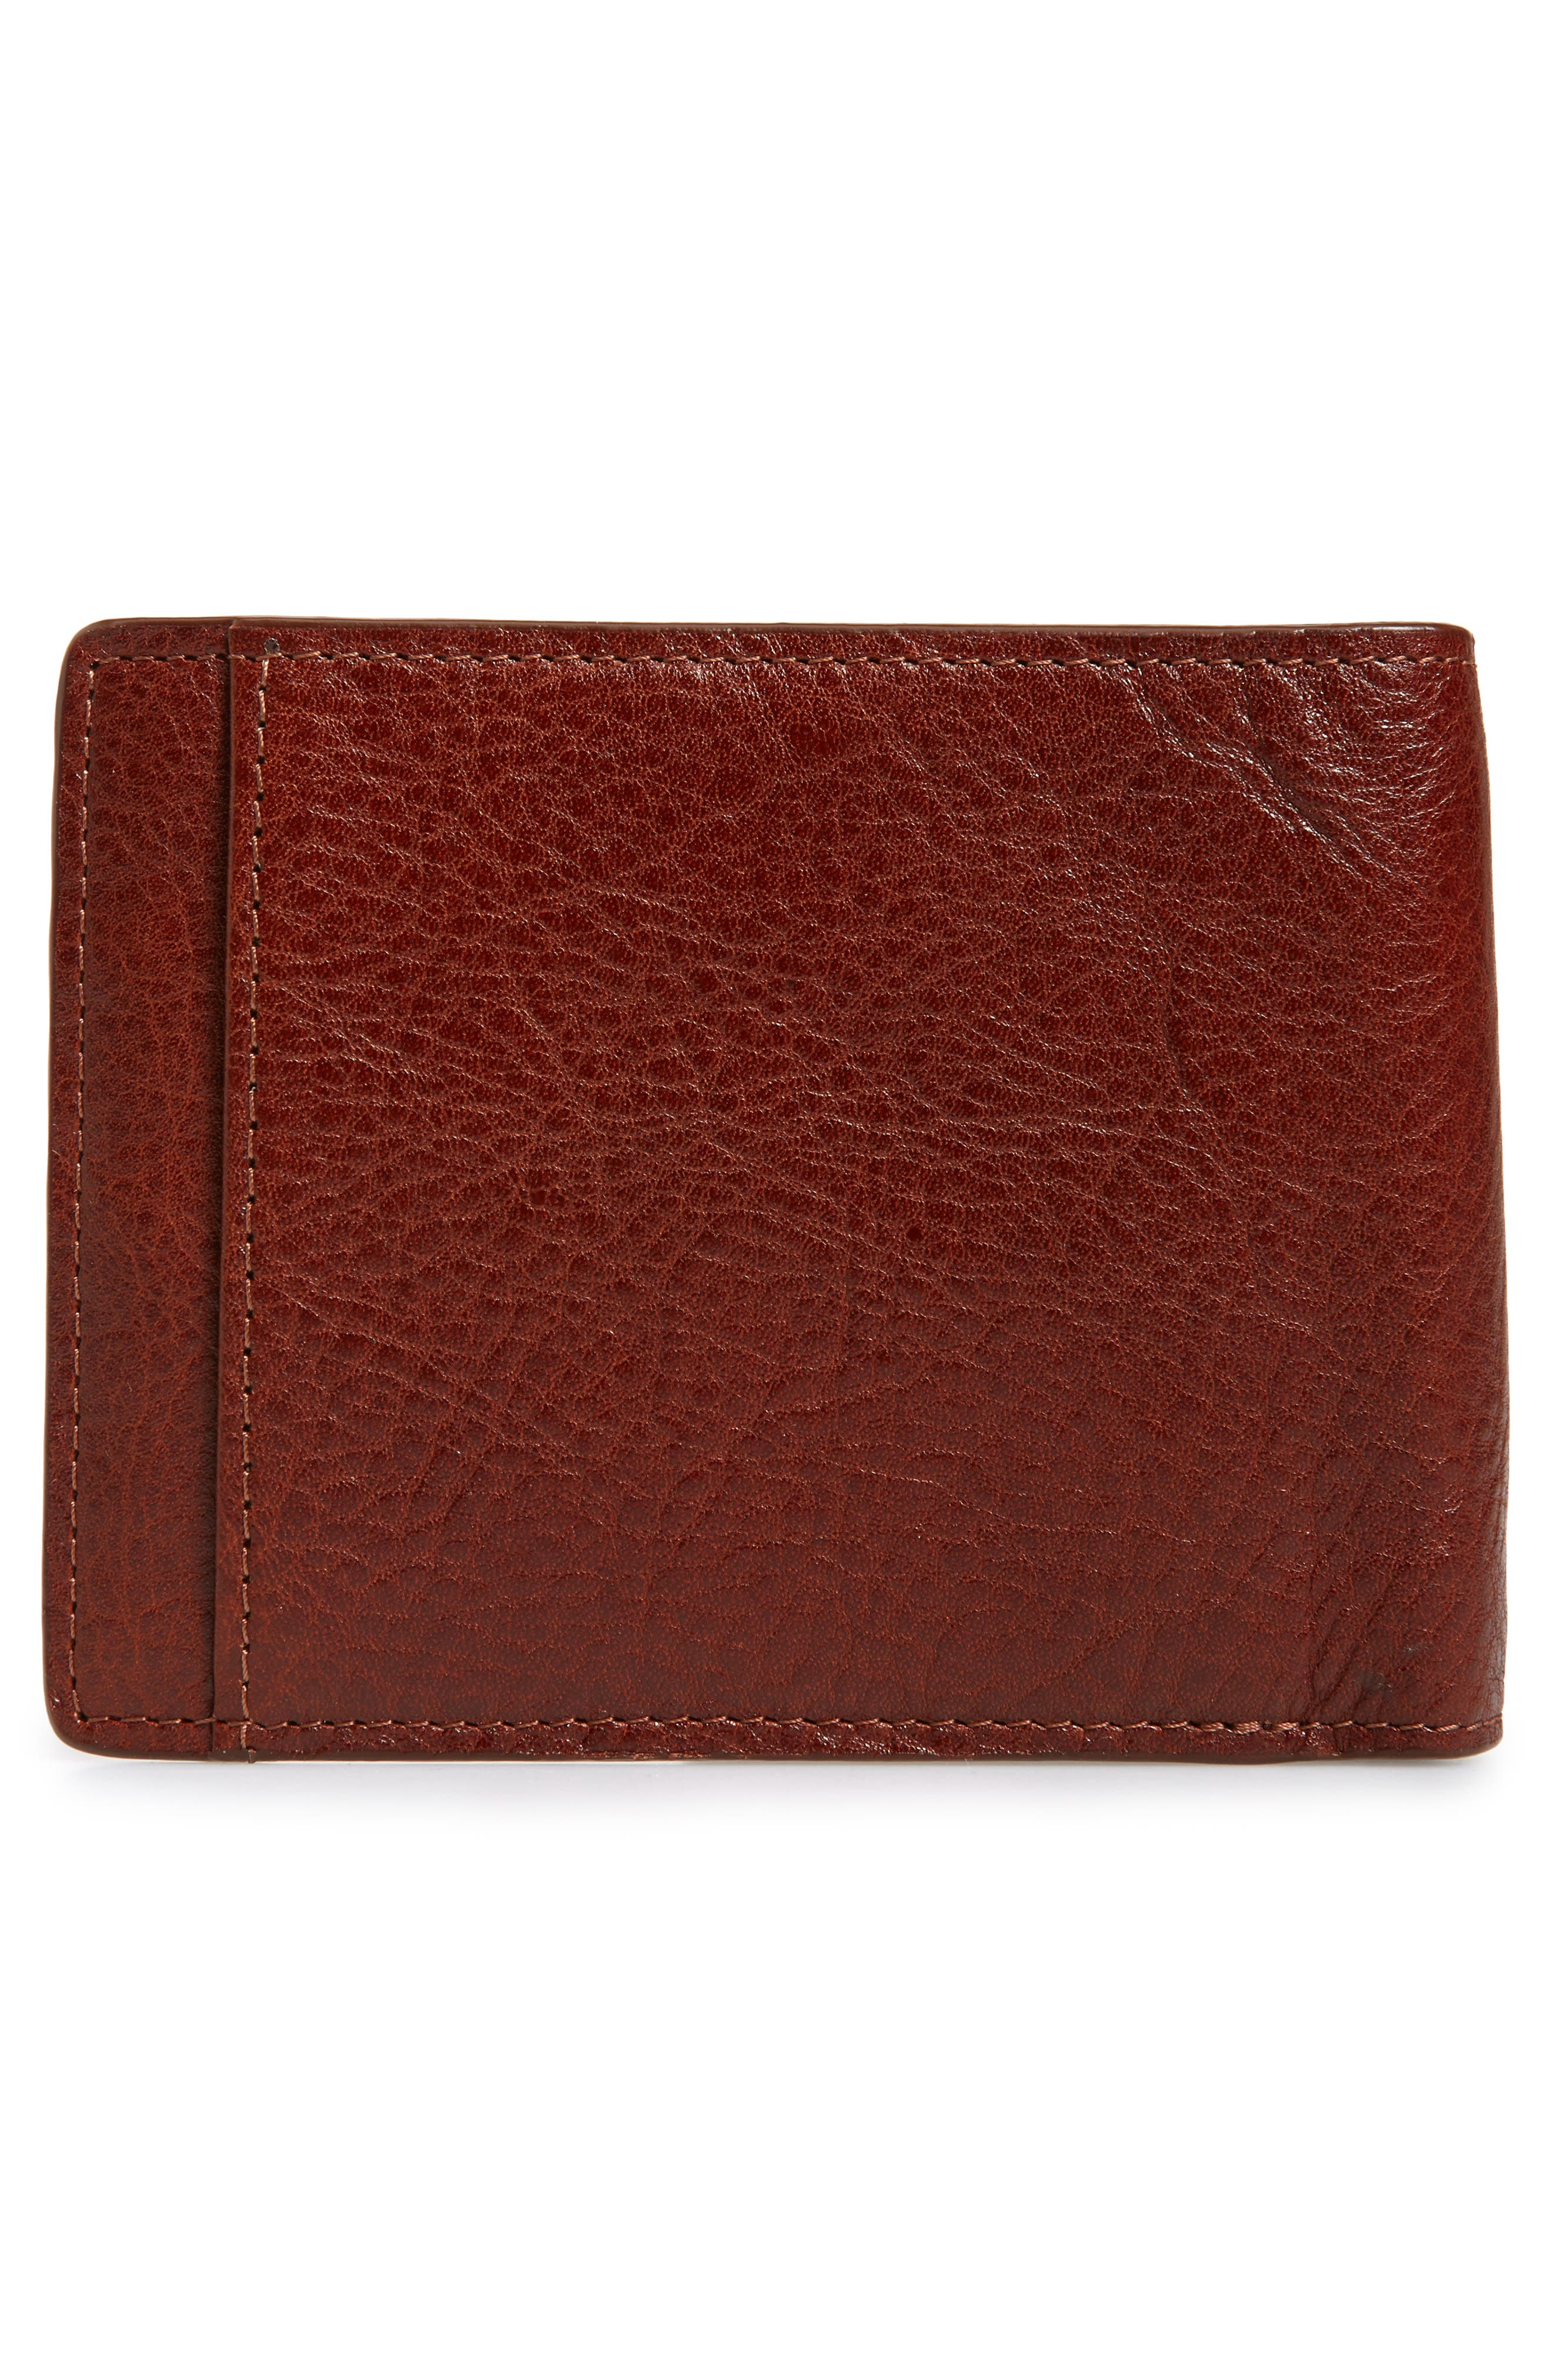 NORDSTROM MEN'S SHOP,                             Richmond Leather Wallet,                             Alternate thumbnail 3, color,                             BROWN HENNA